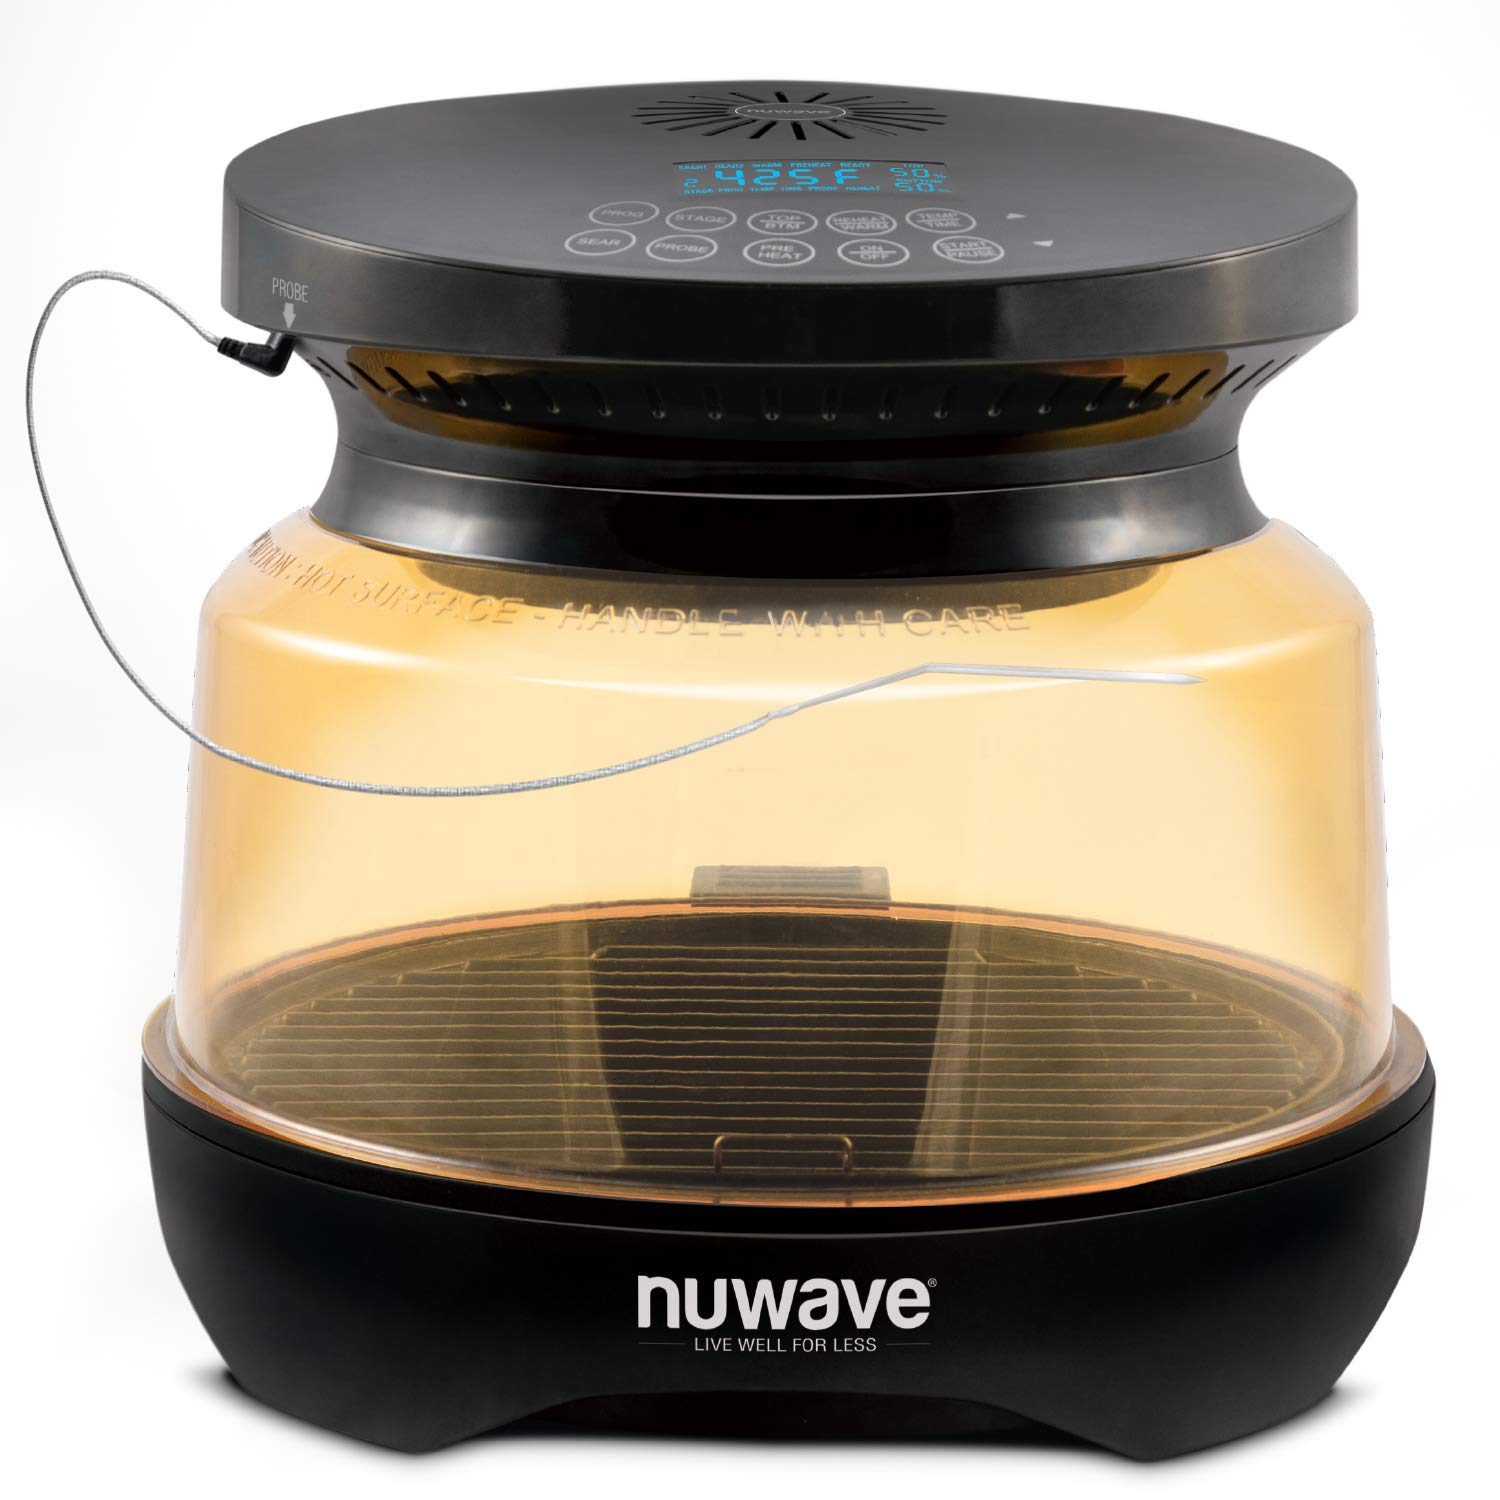 NuWave Primo, Next Generation Oven Combines a Grill and countertop Oven, with top and Bottom Heat for Faster, Better Cooking, from Fresh or Frozen, Cooking up to 70% Faster. by NuWave